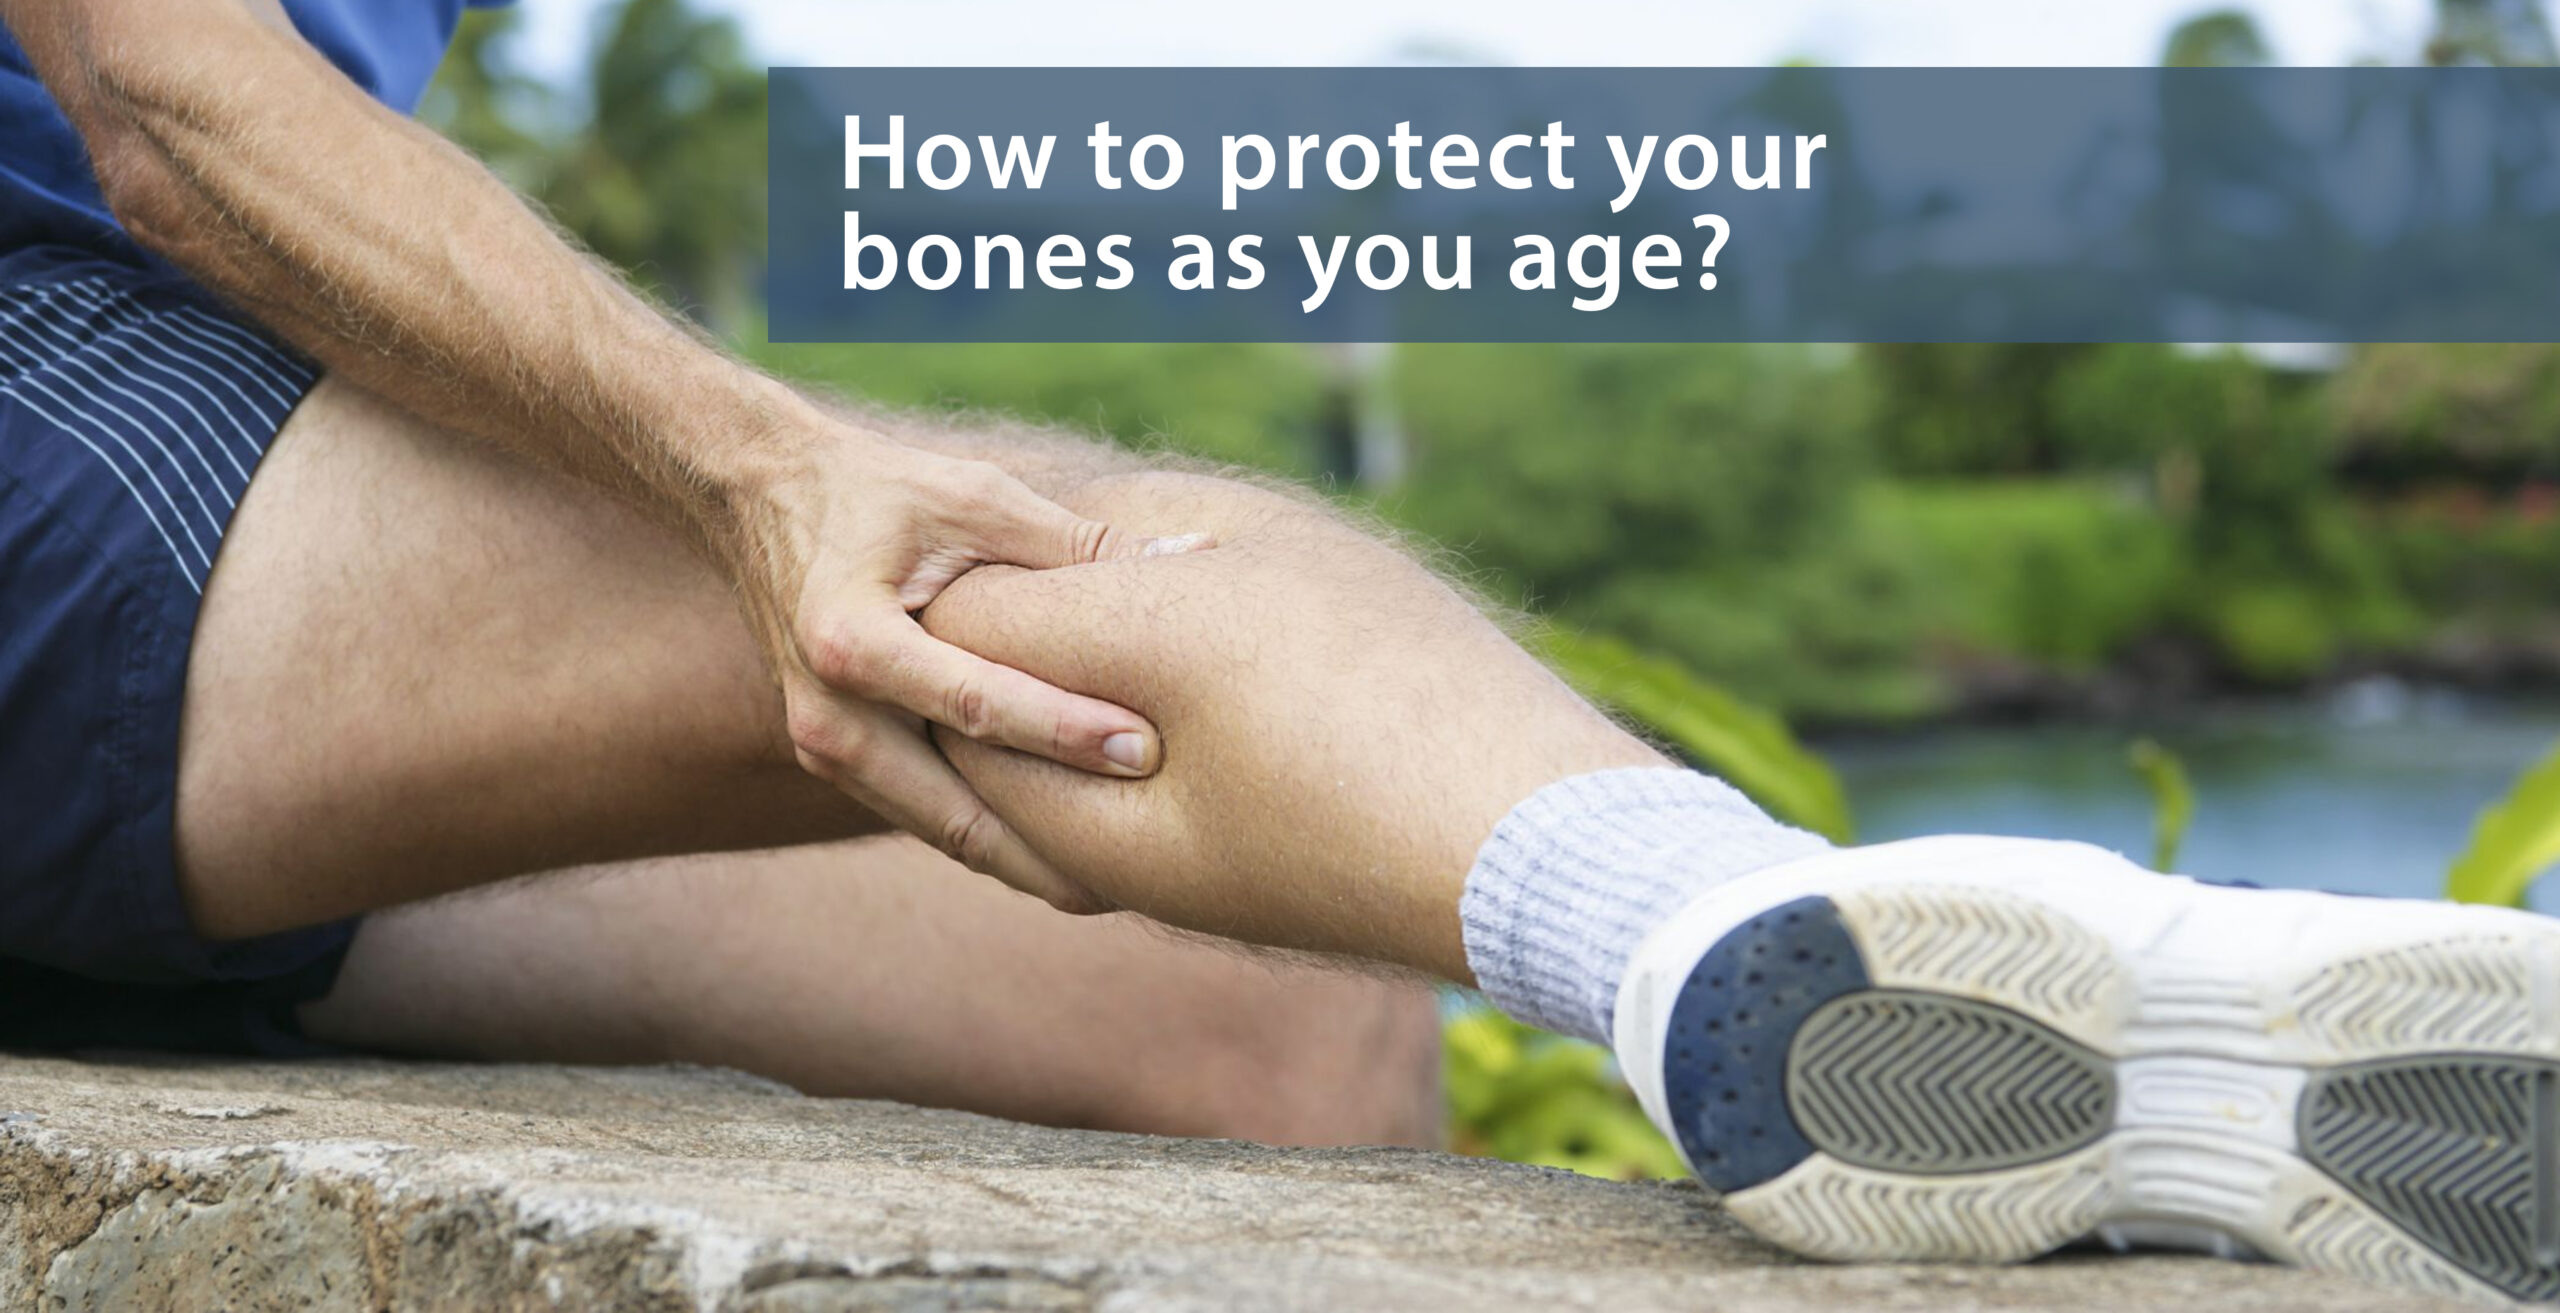 How to protect your bones as you age